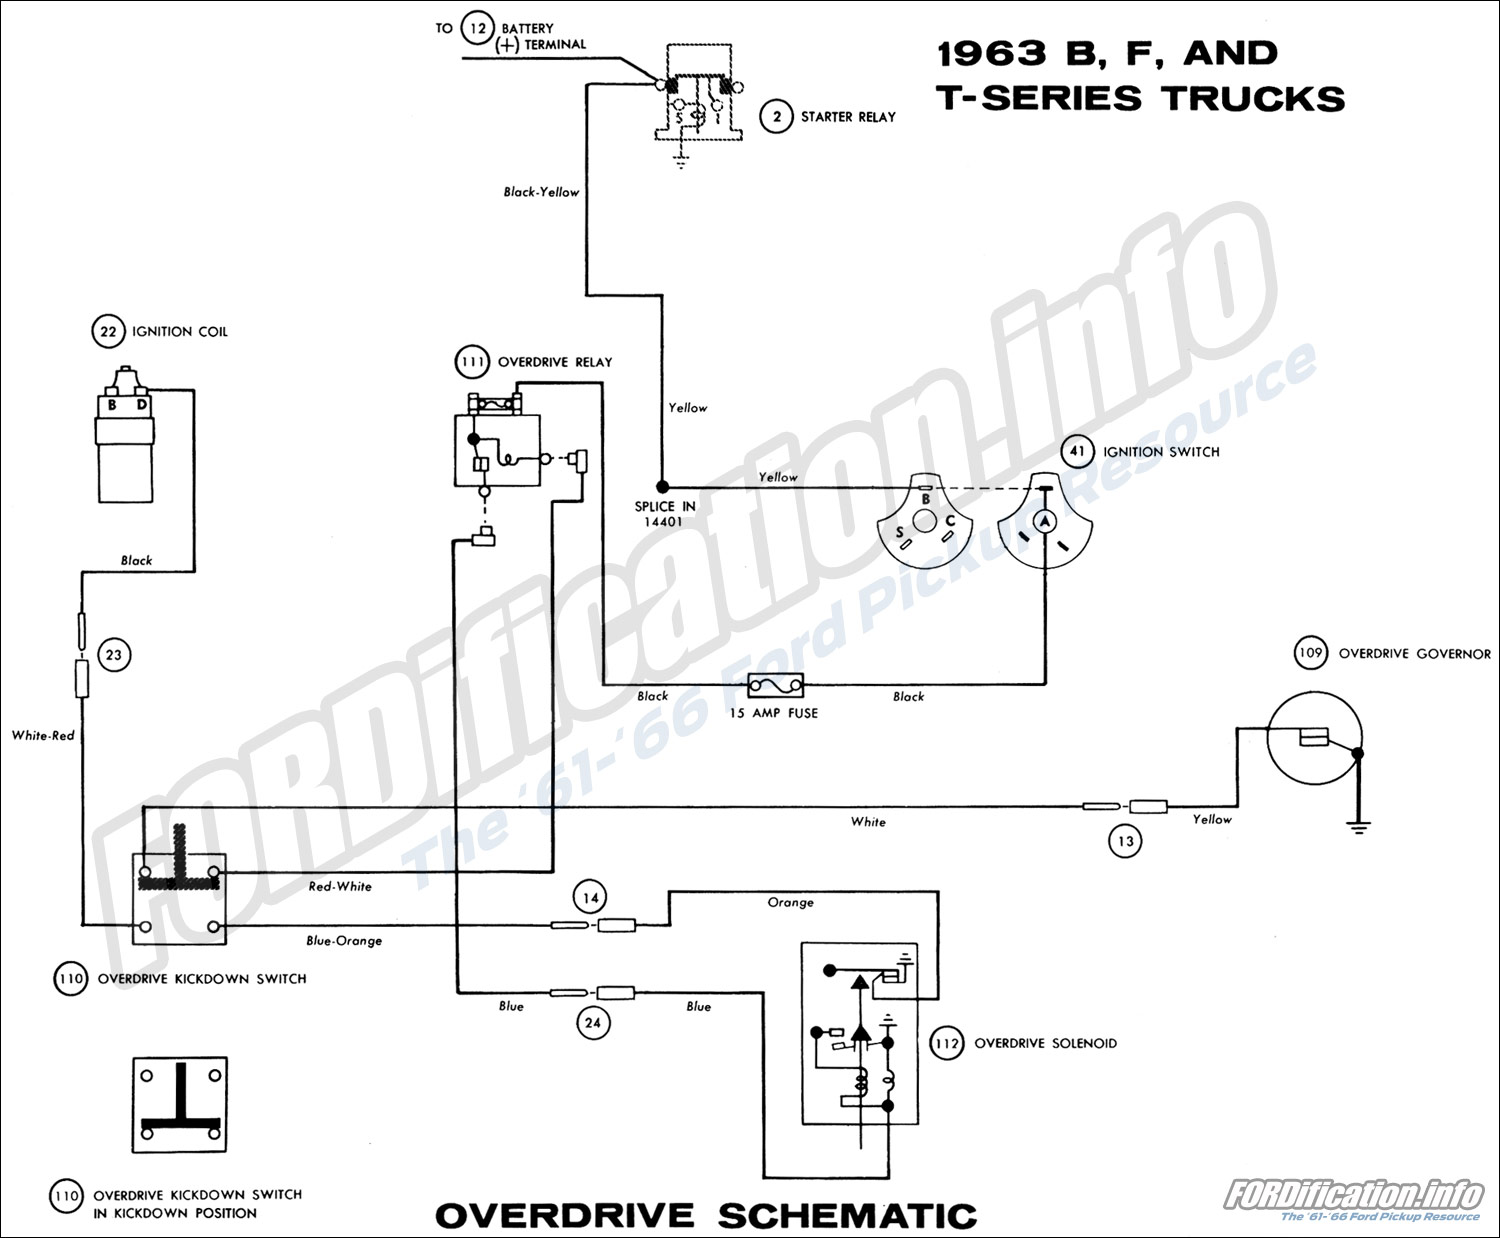 1963 Ford Ignition Coil Wiring Example Electrical Wiring Diagram \u2022  Electronic Ignition Diagram 1963 Ford Ignition Coil Wiring